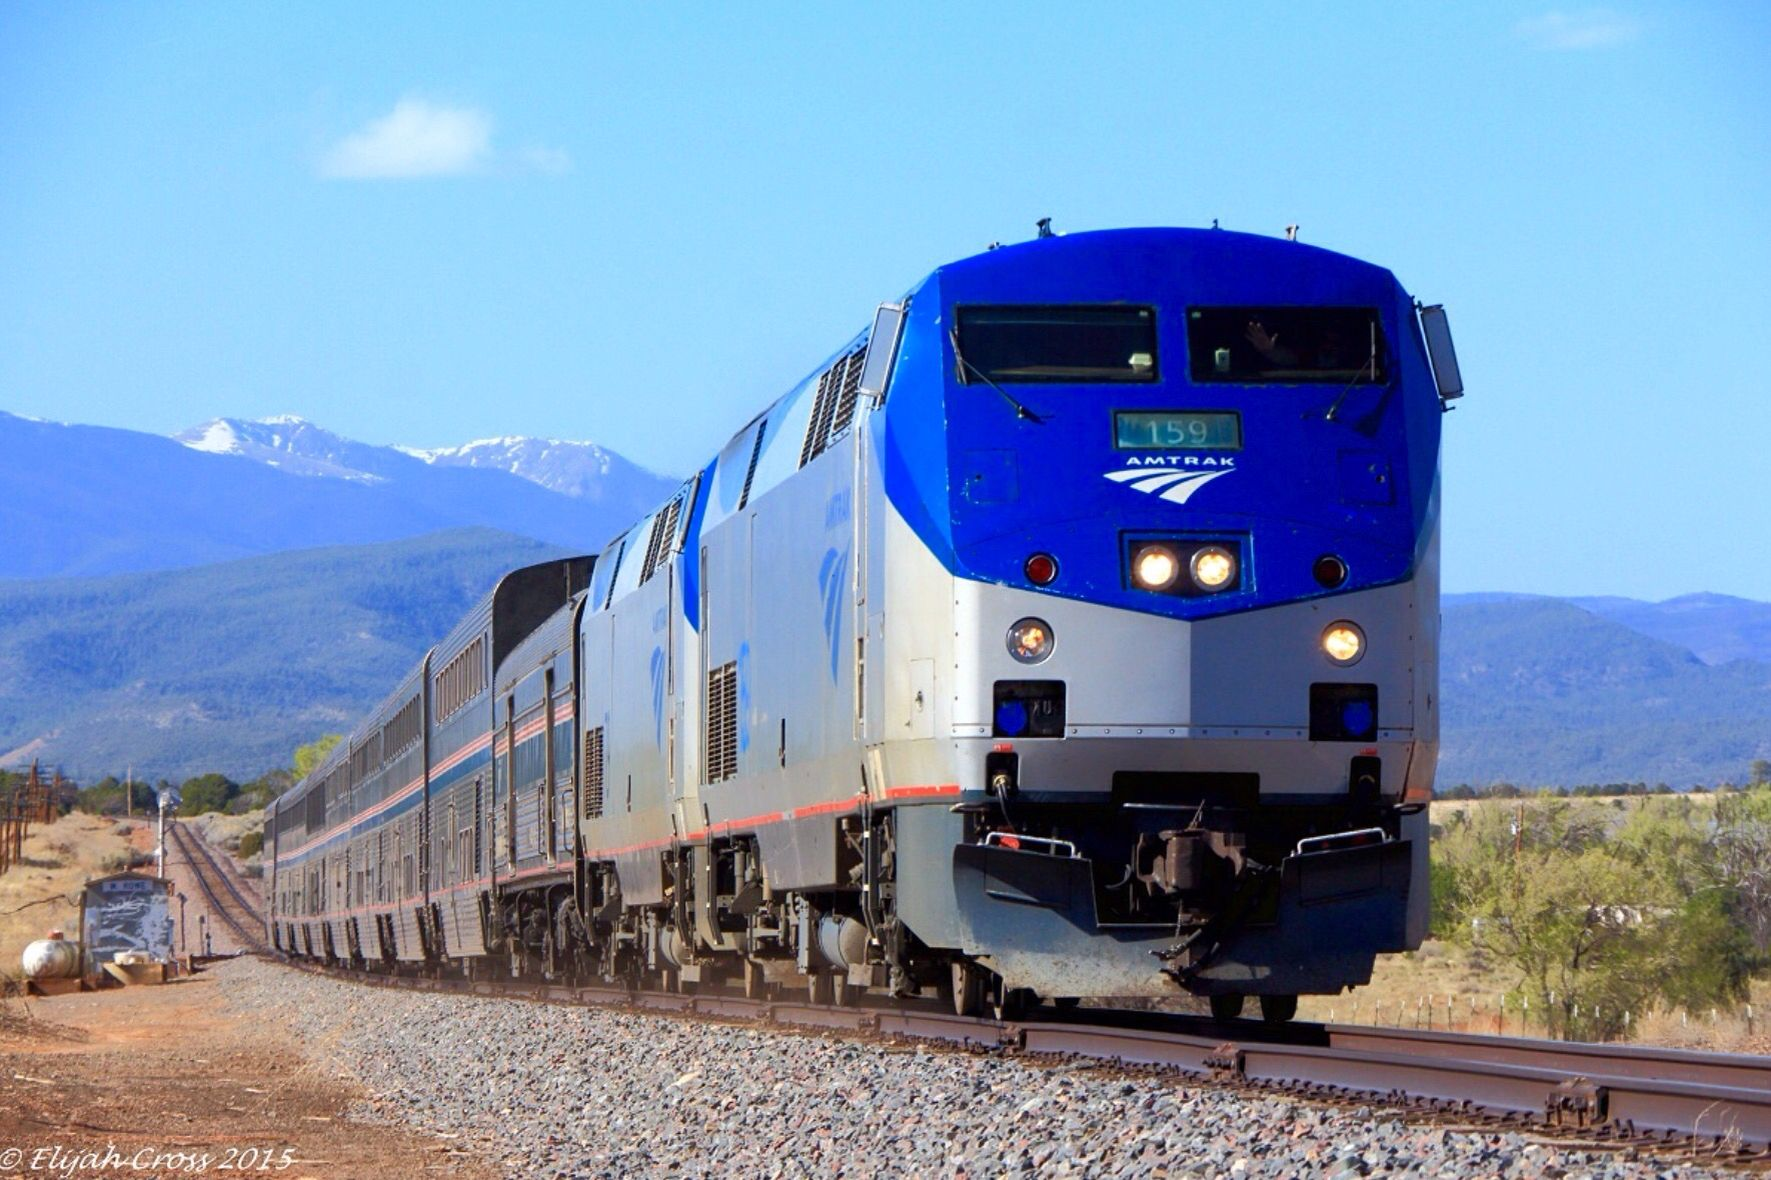 Amtrak GE P42DC AMTK 159 at Rowe, New Mexico, USA